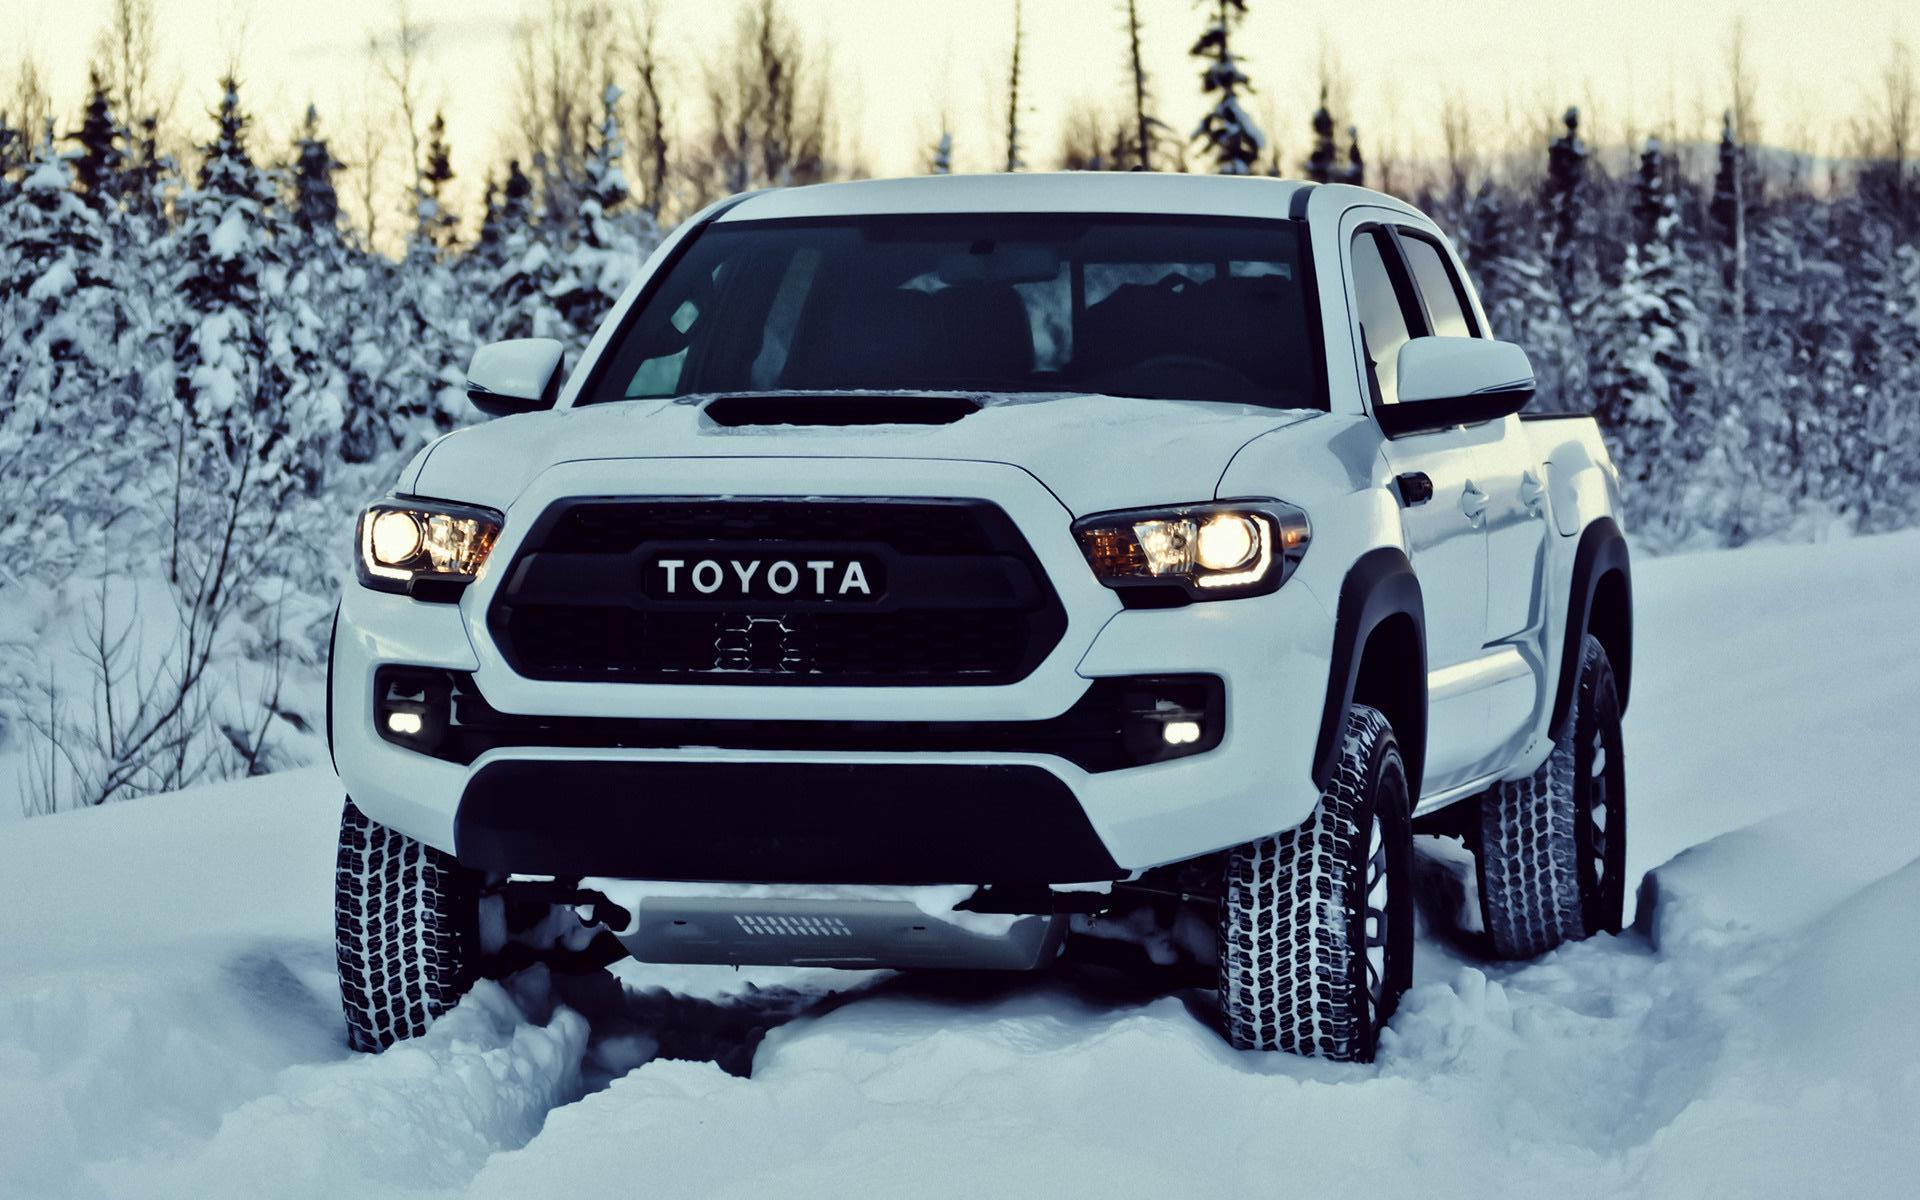 COOL TOYOTA TACOMA WALLPAPERS